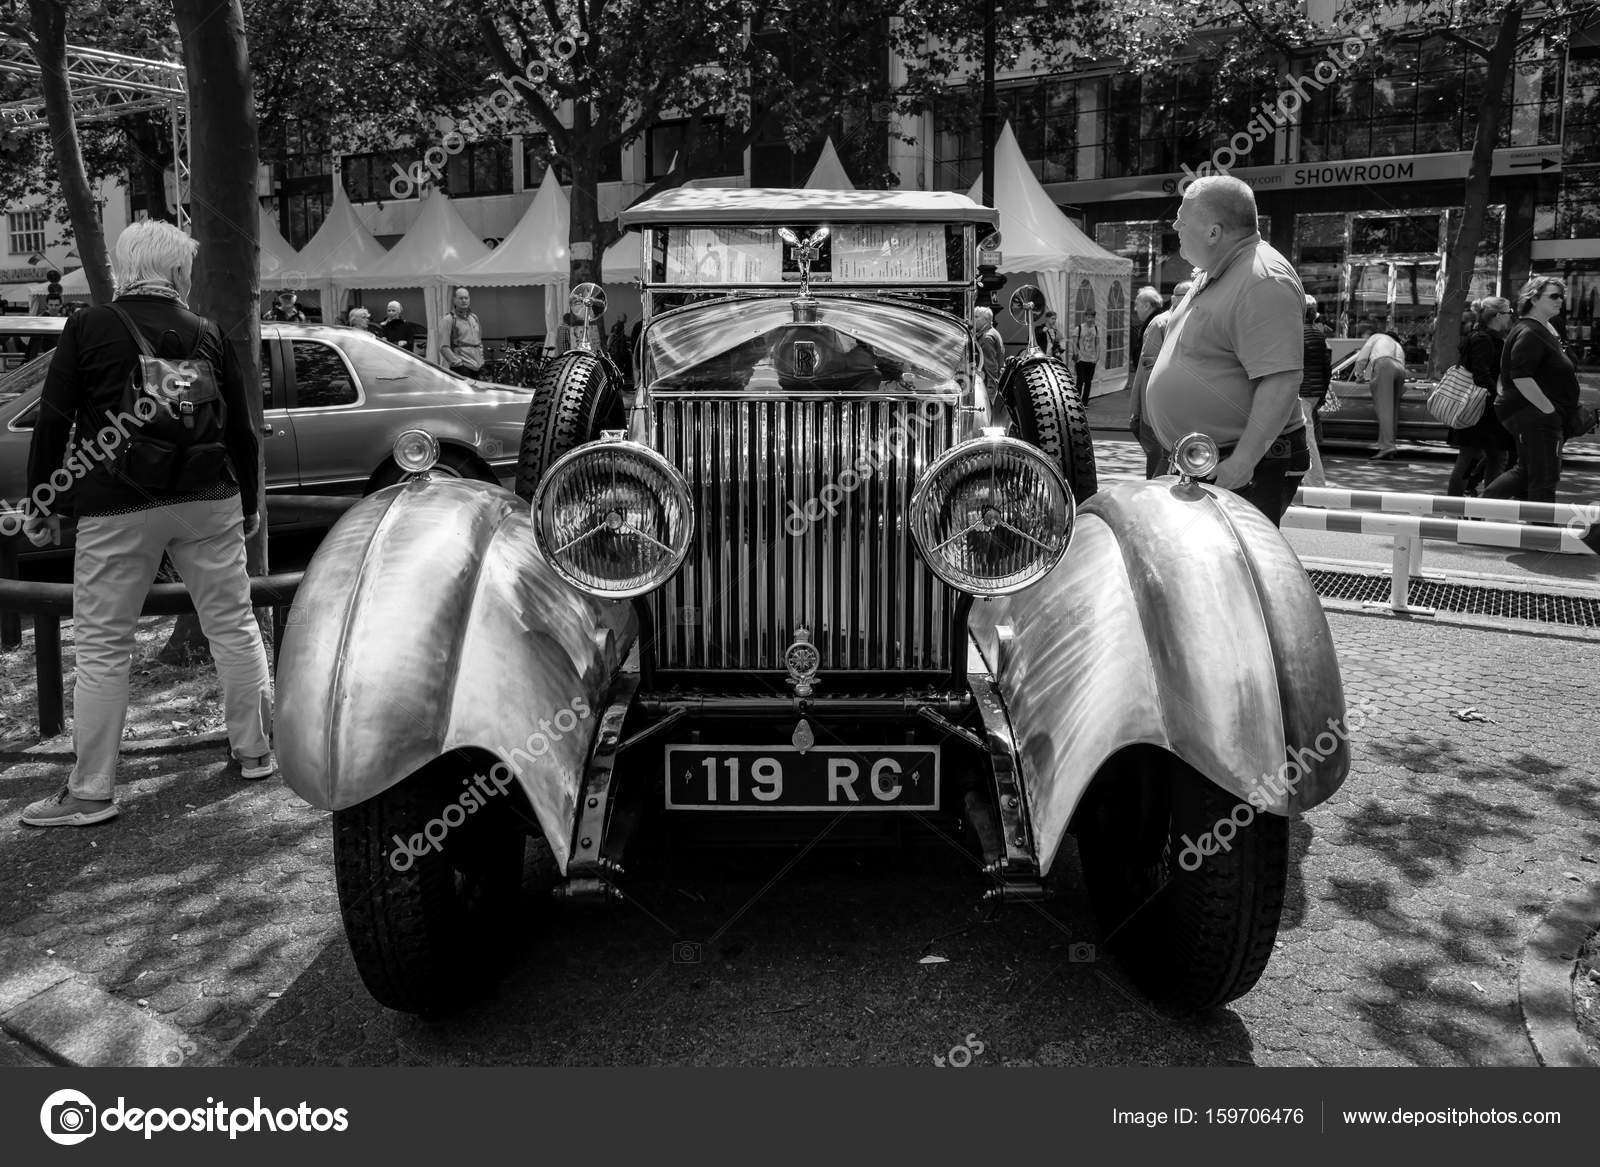 Luxury Car Rolls Royce Phantom I 1925 Stock Editorial Photo C S Kohl 159706476